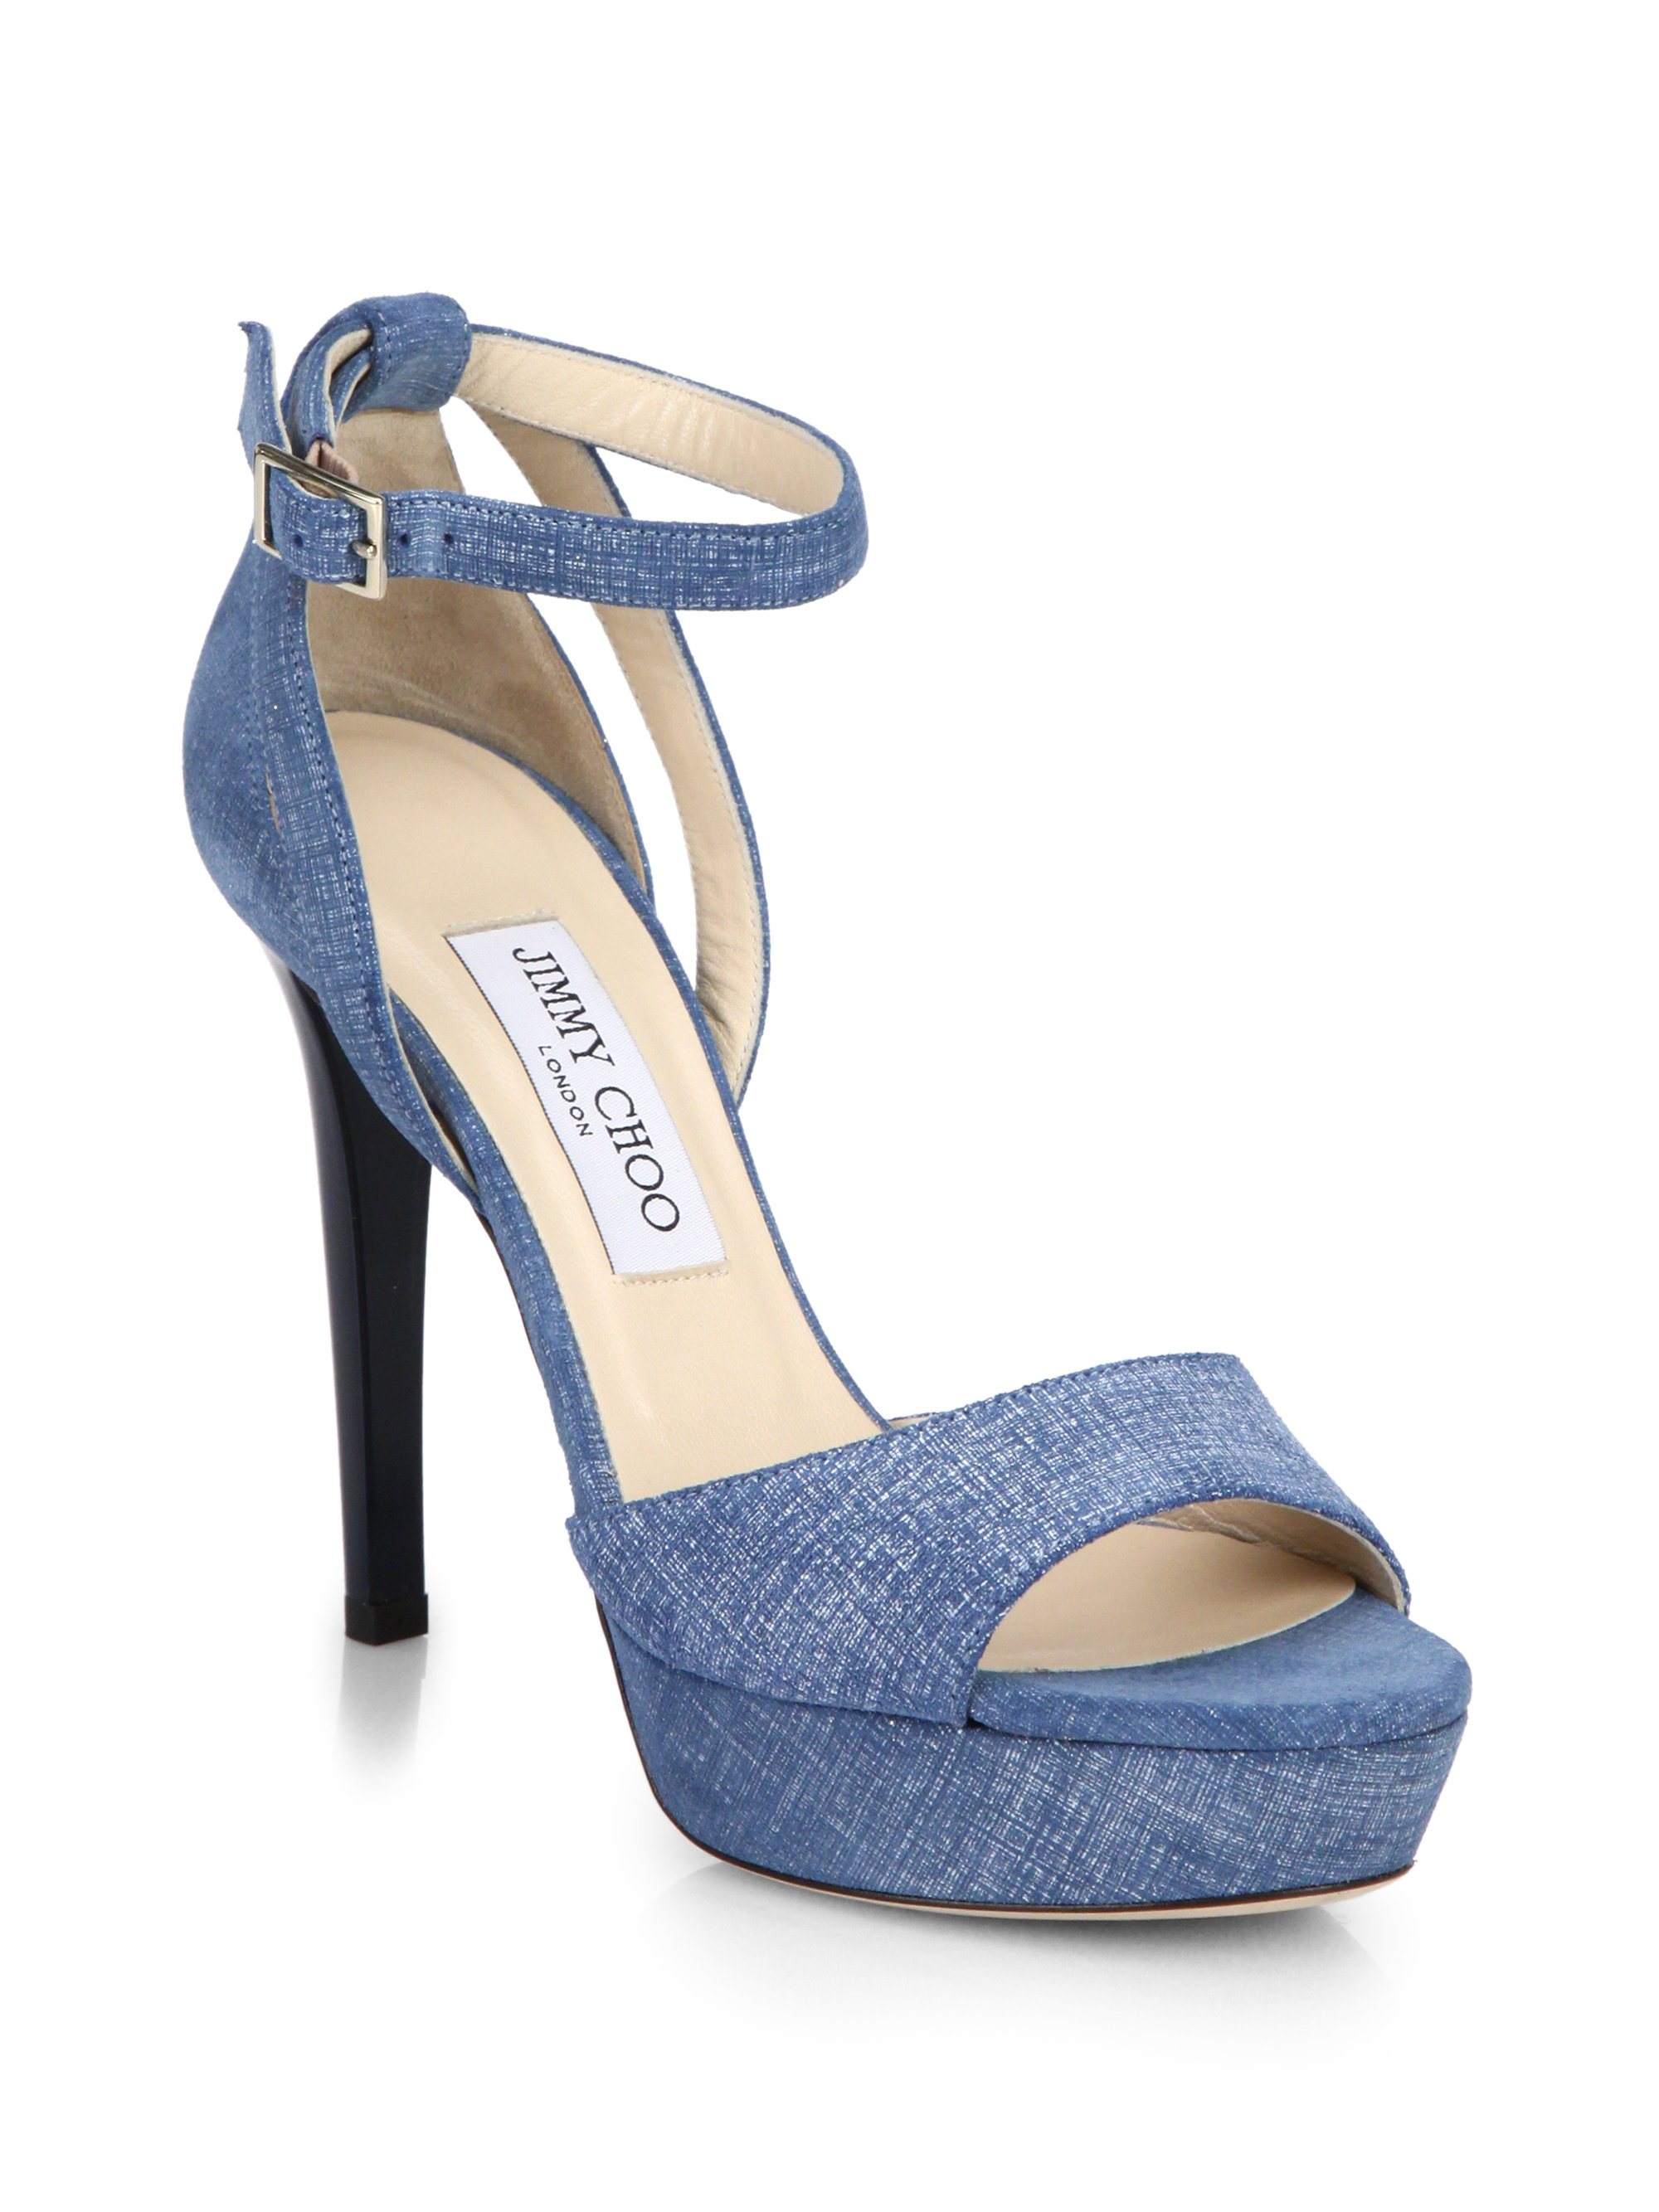 5f6efd469 Lyst - Jimmy Choo Kayden Denim Platform Sandals in Blue